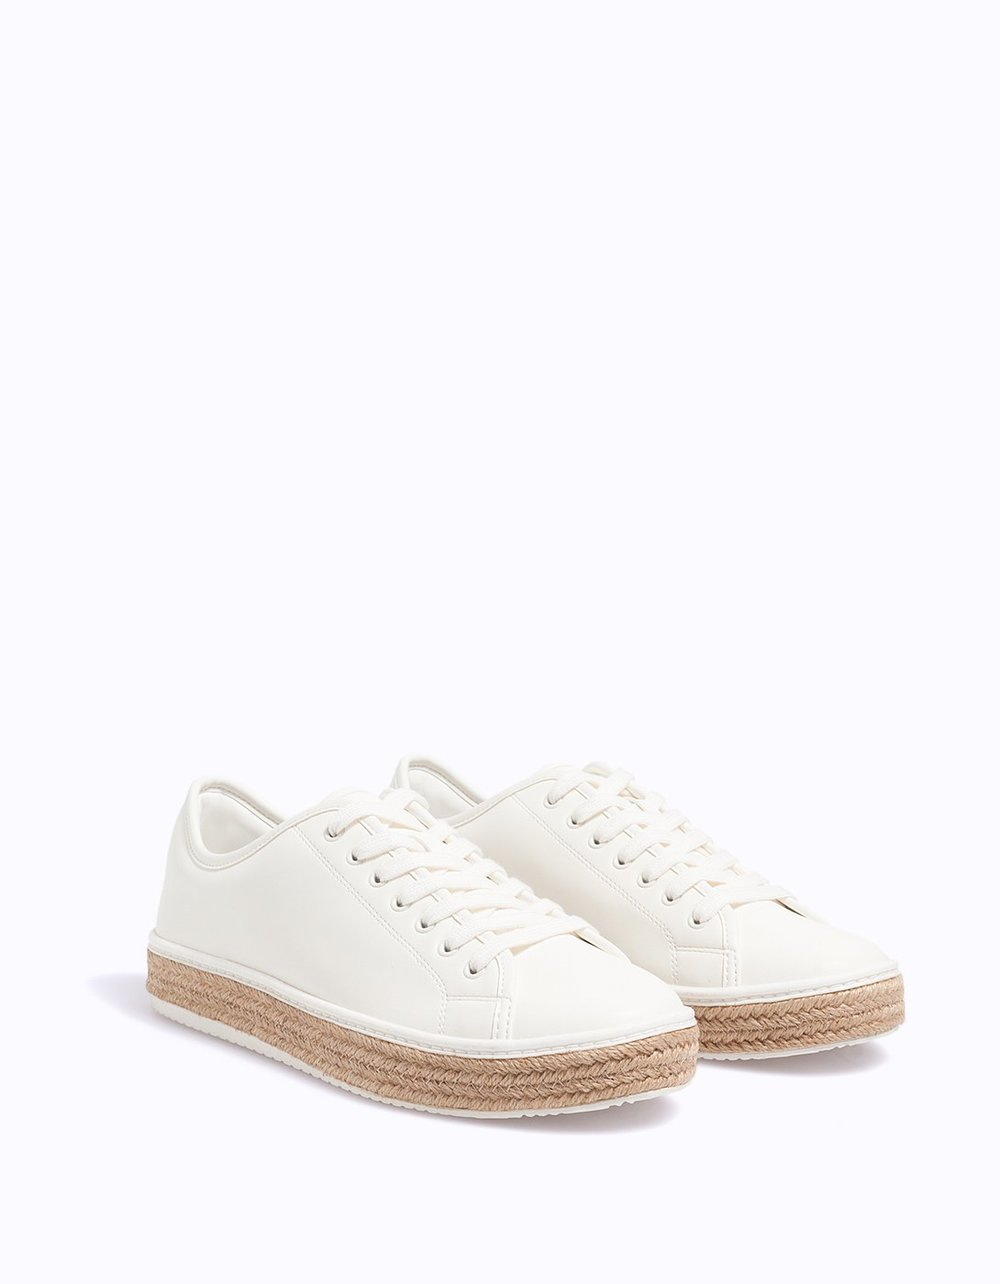 Stradivarius White Sneakers